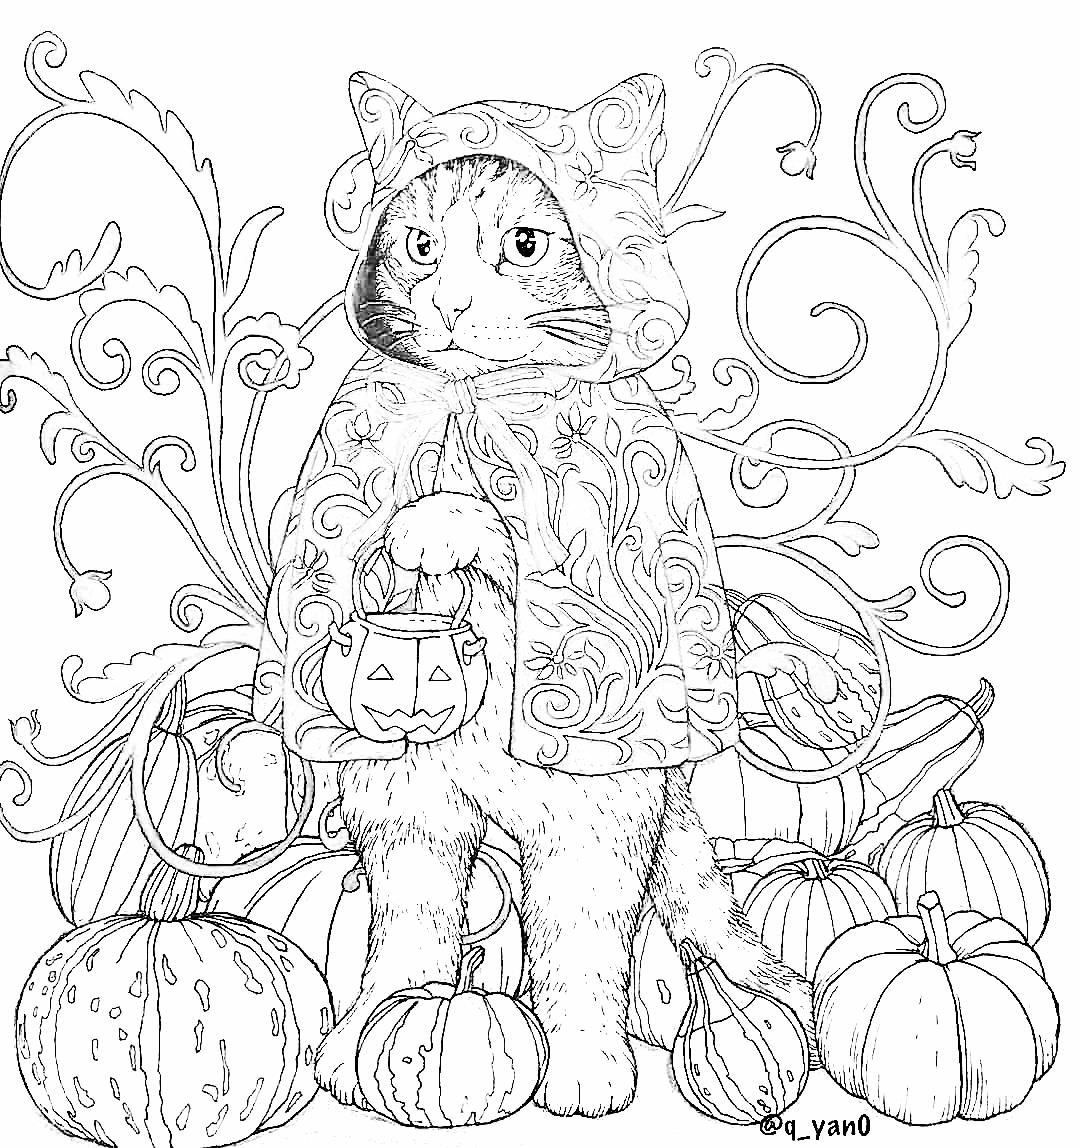 Pin By Robyn Ashby On Blank Coloring Pages For Tutorials Coloring Books Fall Coloring Pages Halloween Coloring Book [ 1148 x 1080 Pixel ]